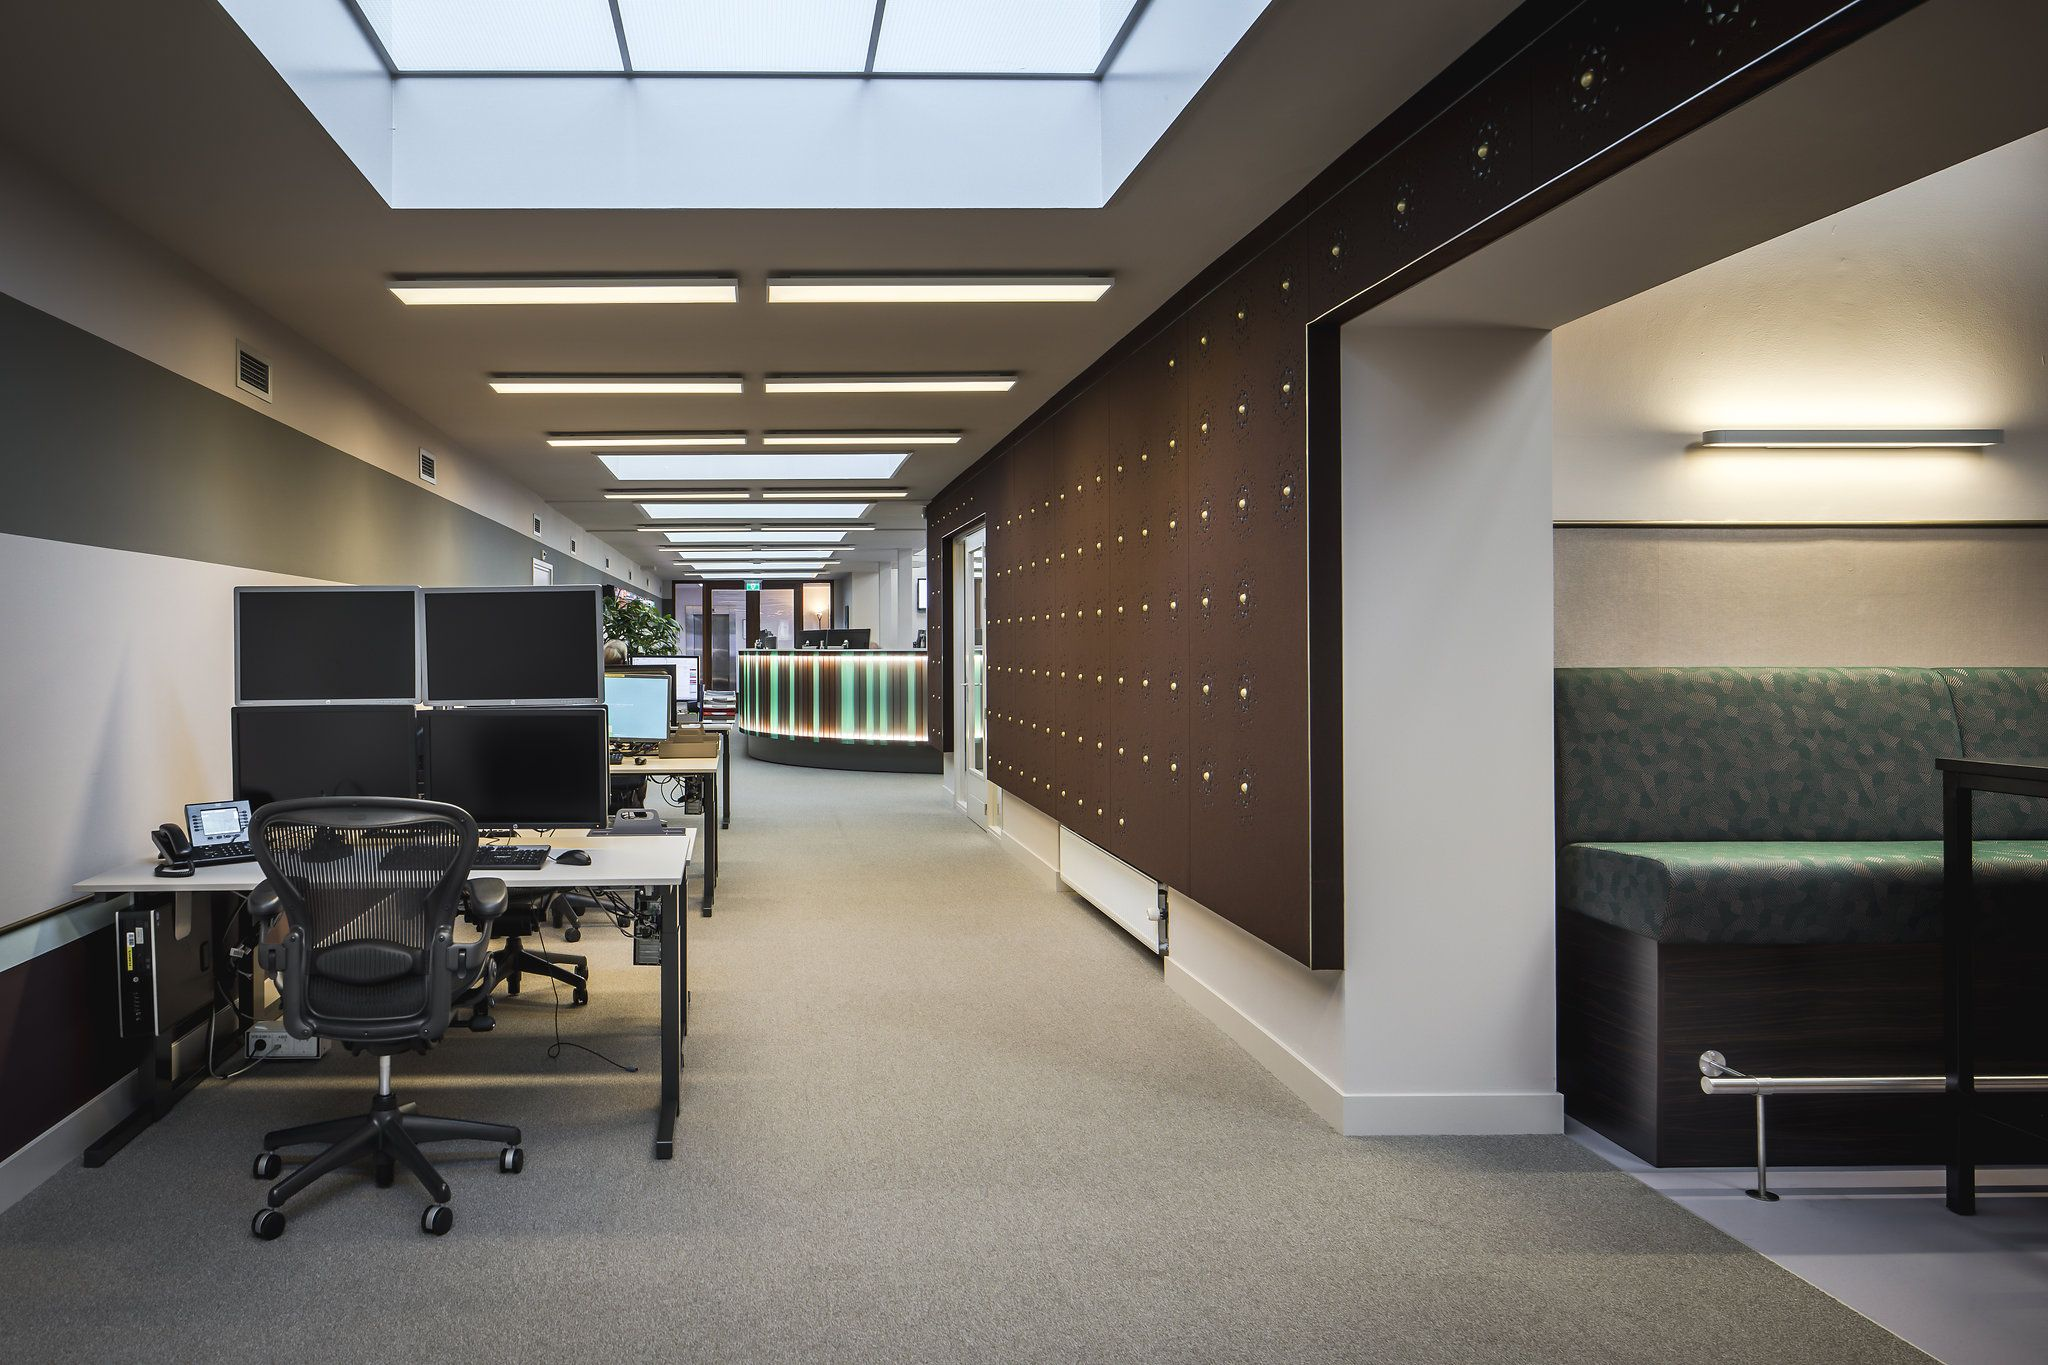 Derksdenboer interior architecture office for euronext amsterdam